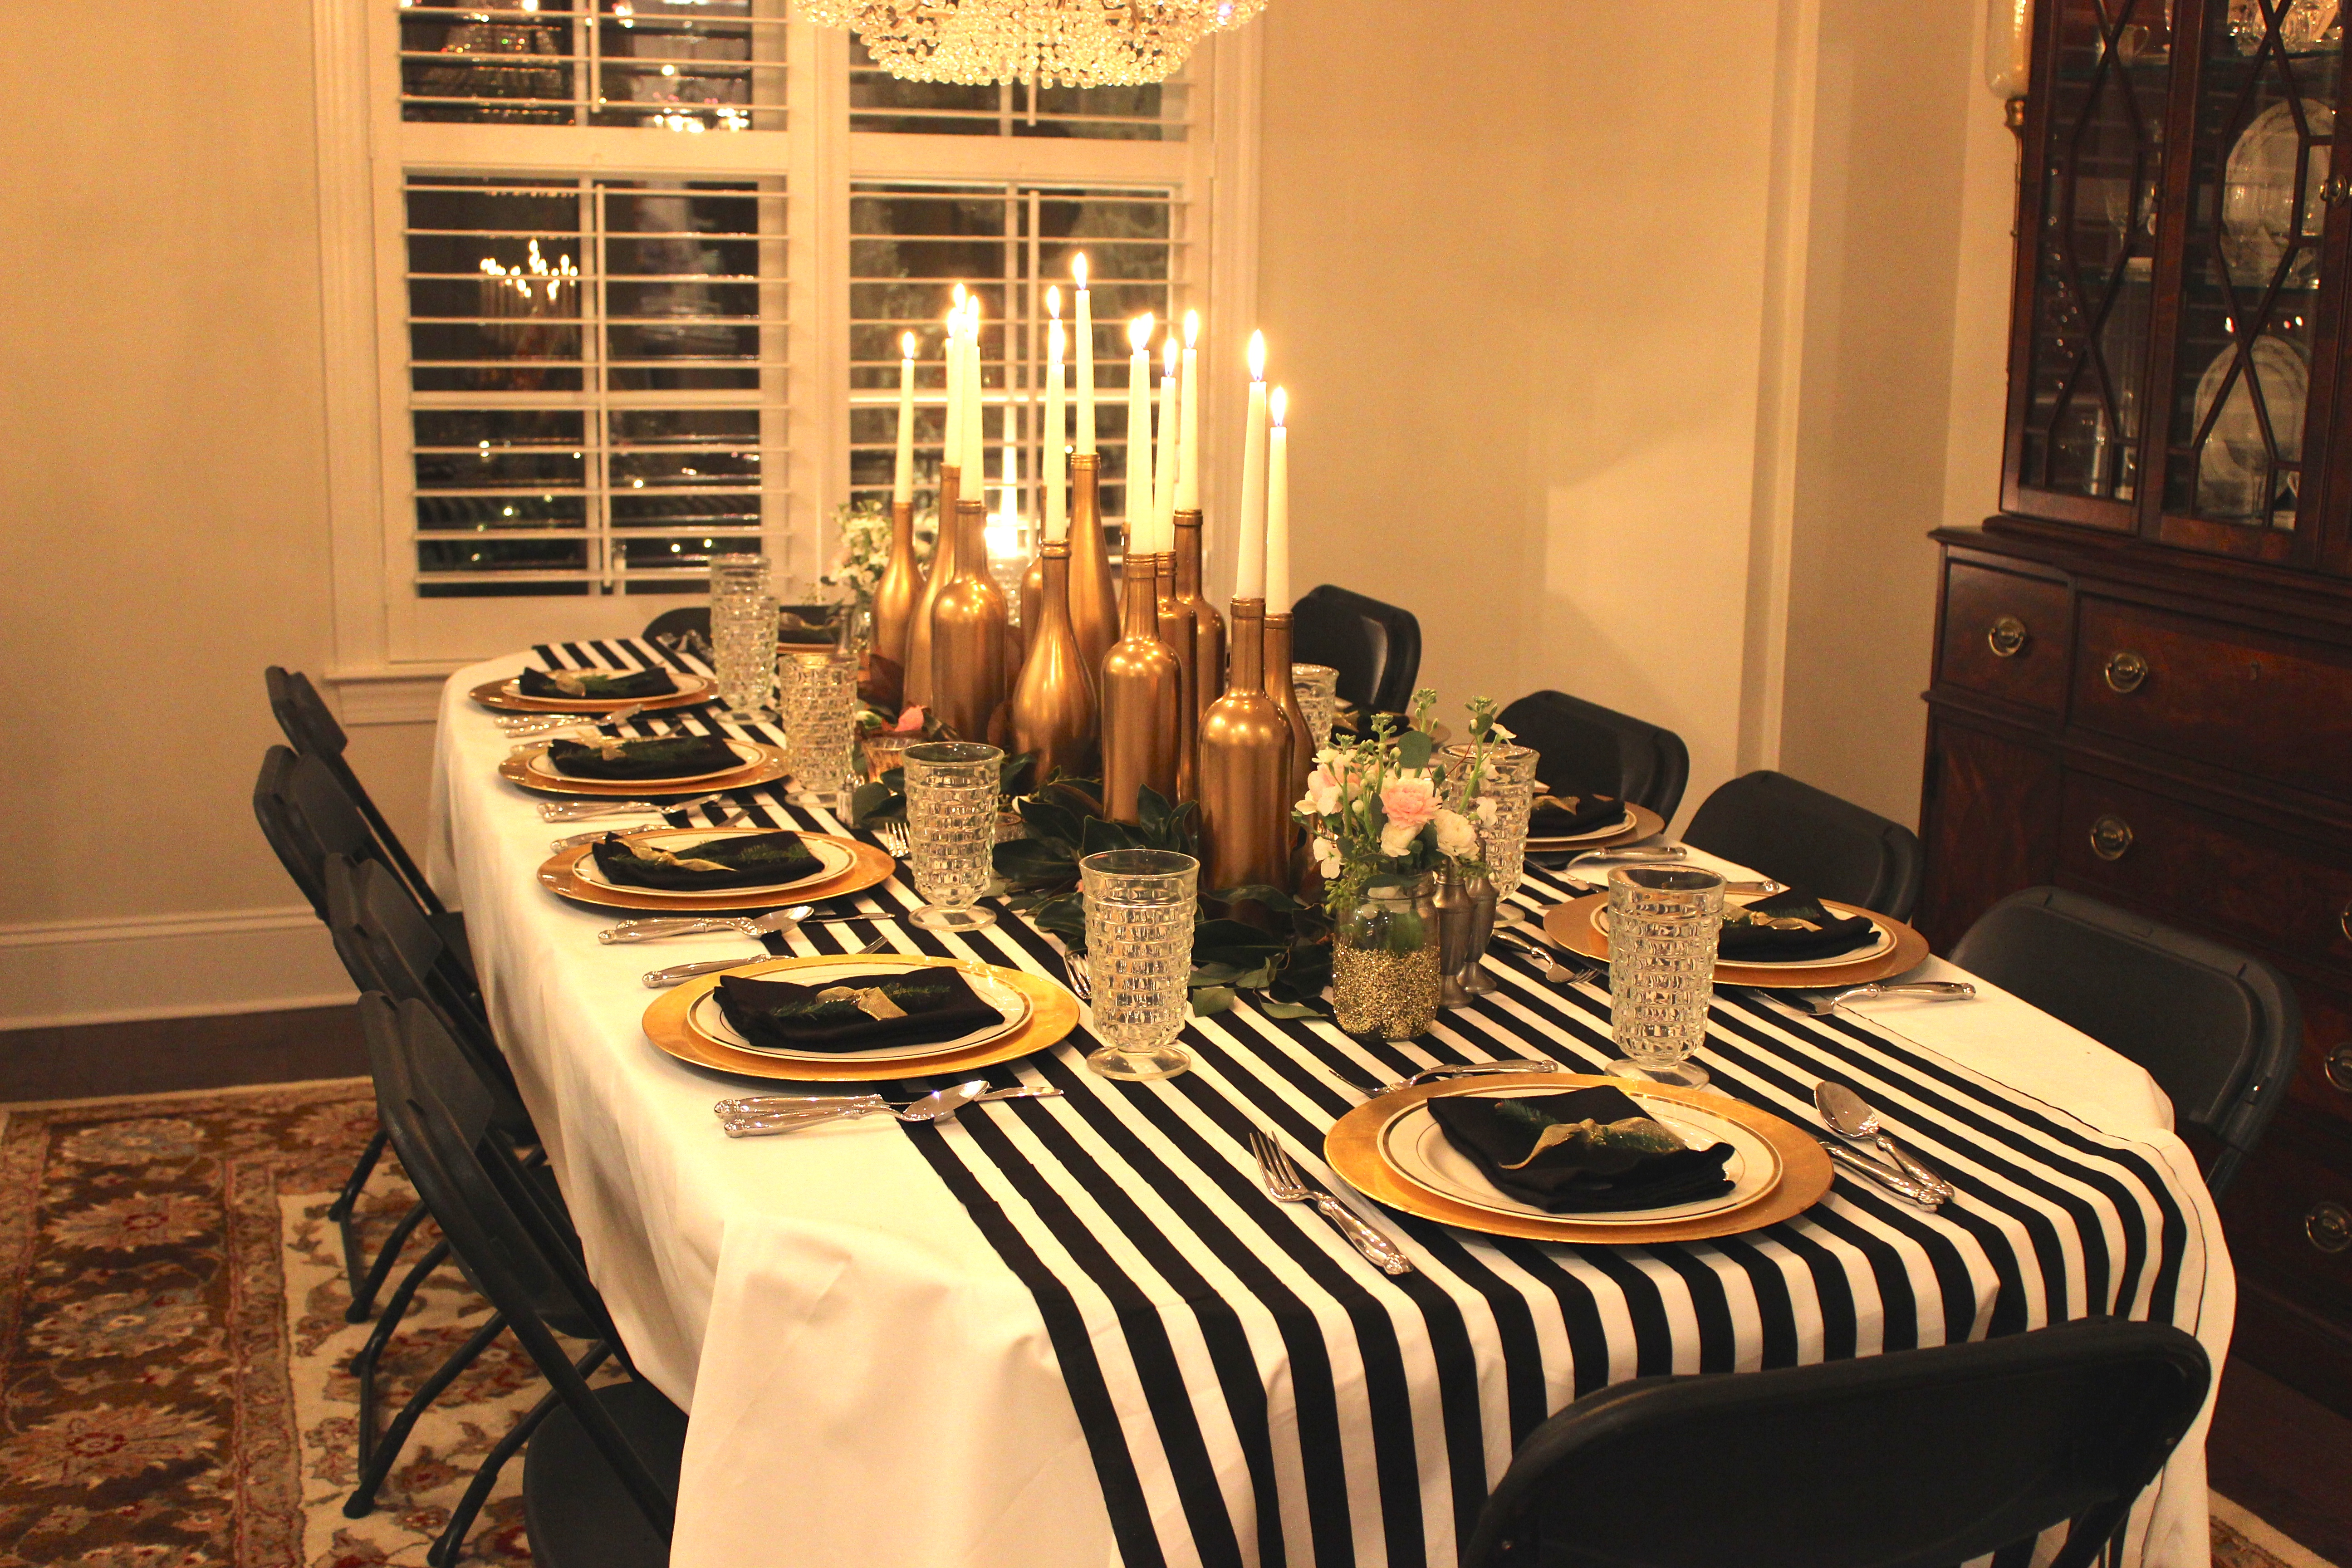 Black White And Gold Decor  from i0.wp.com